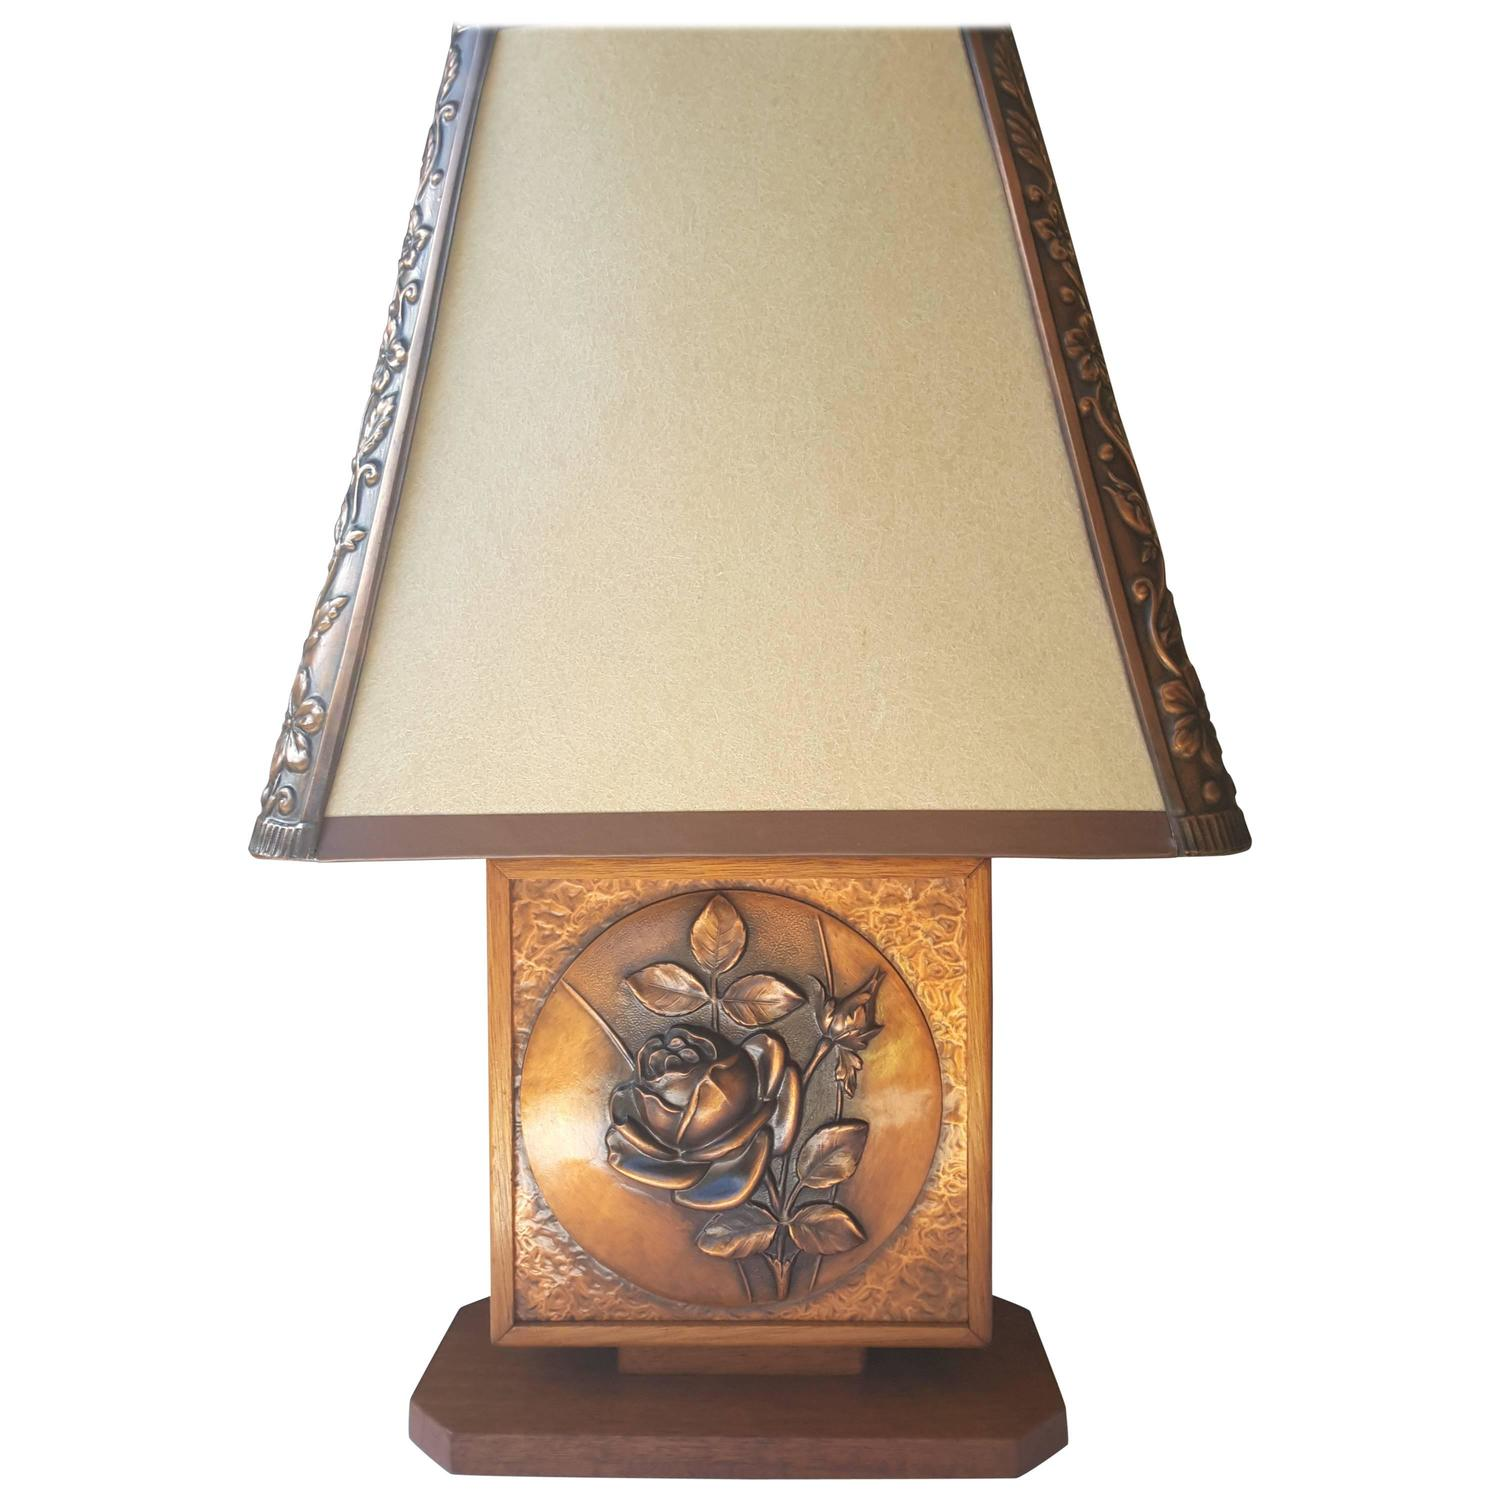 Albert gilles mid century oak and copper rose table lamp for sale albert gilles mid century oak and copper rose table lamp for sale at 1stdibs geotapseo Images